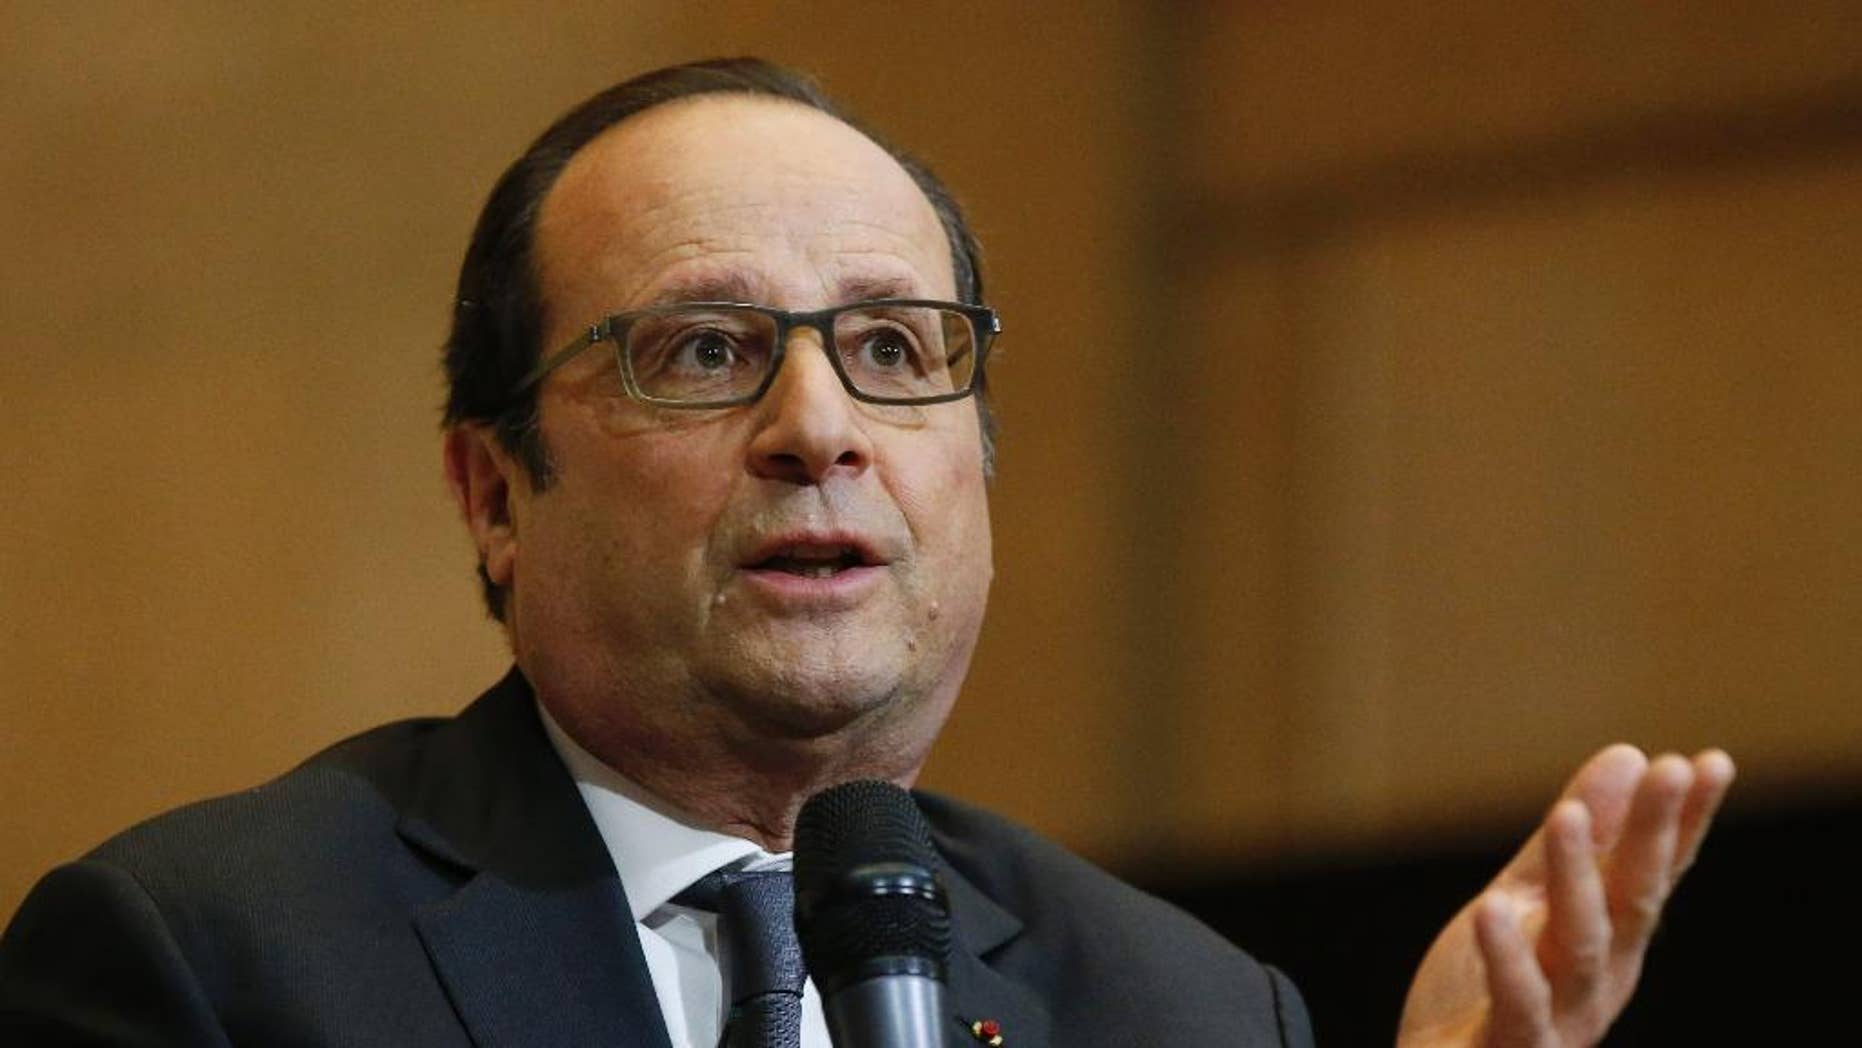 France's President Francois Hollande speaks to students at the economic and social council in Paris, France, Wednesday, May 6, 2015. (AP Photo/Michel Euler, Pool)